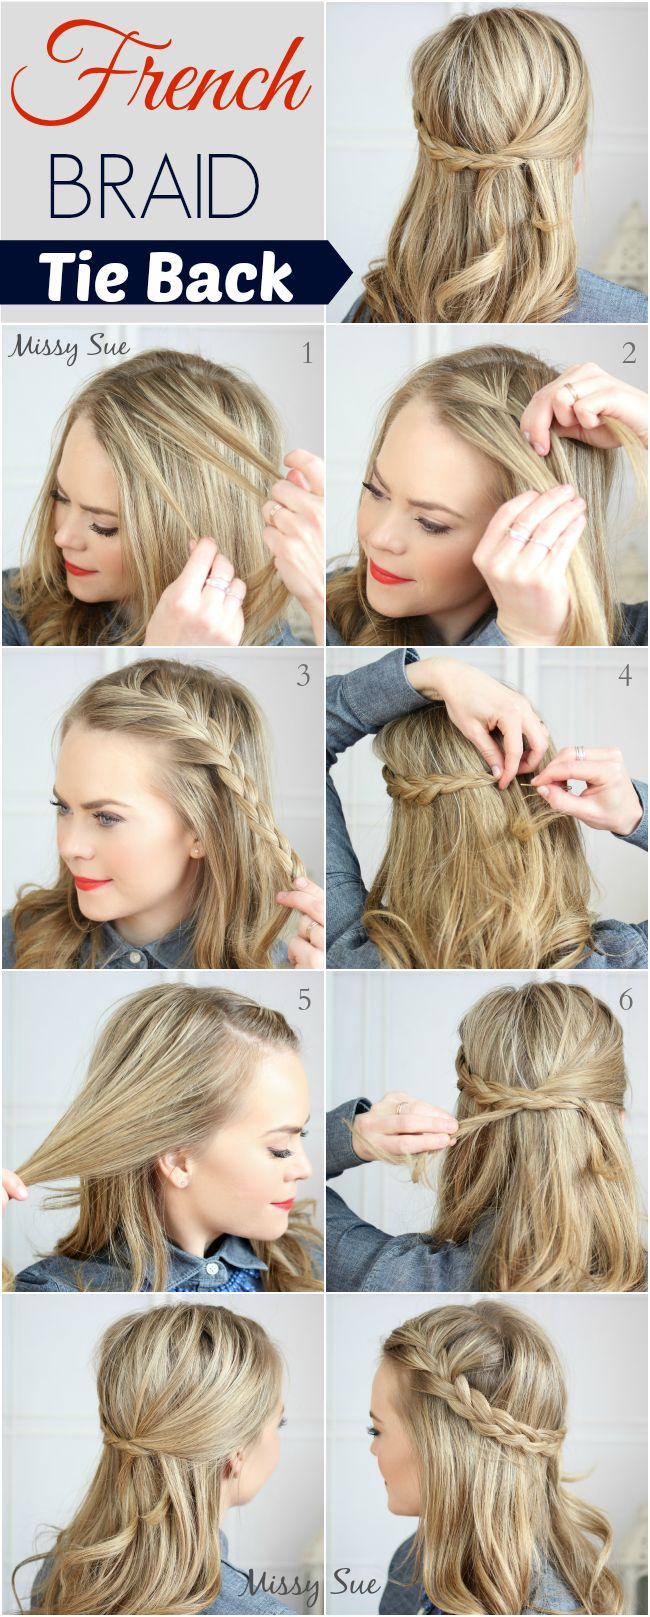 French braiding tips - Braid 17 French Braid Tie Back